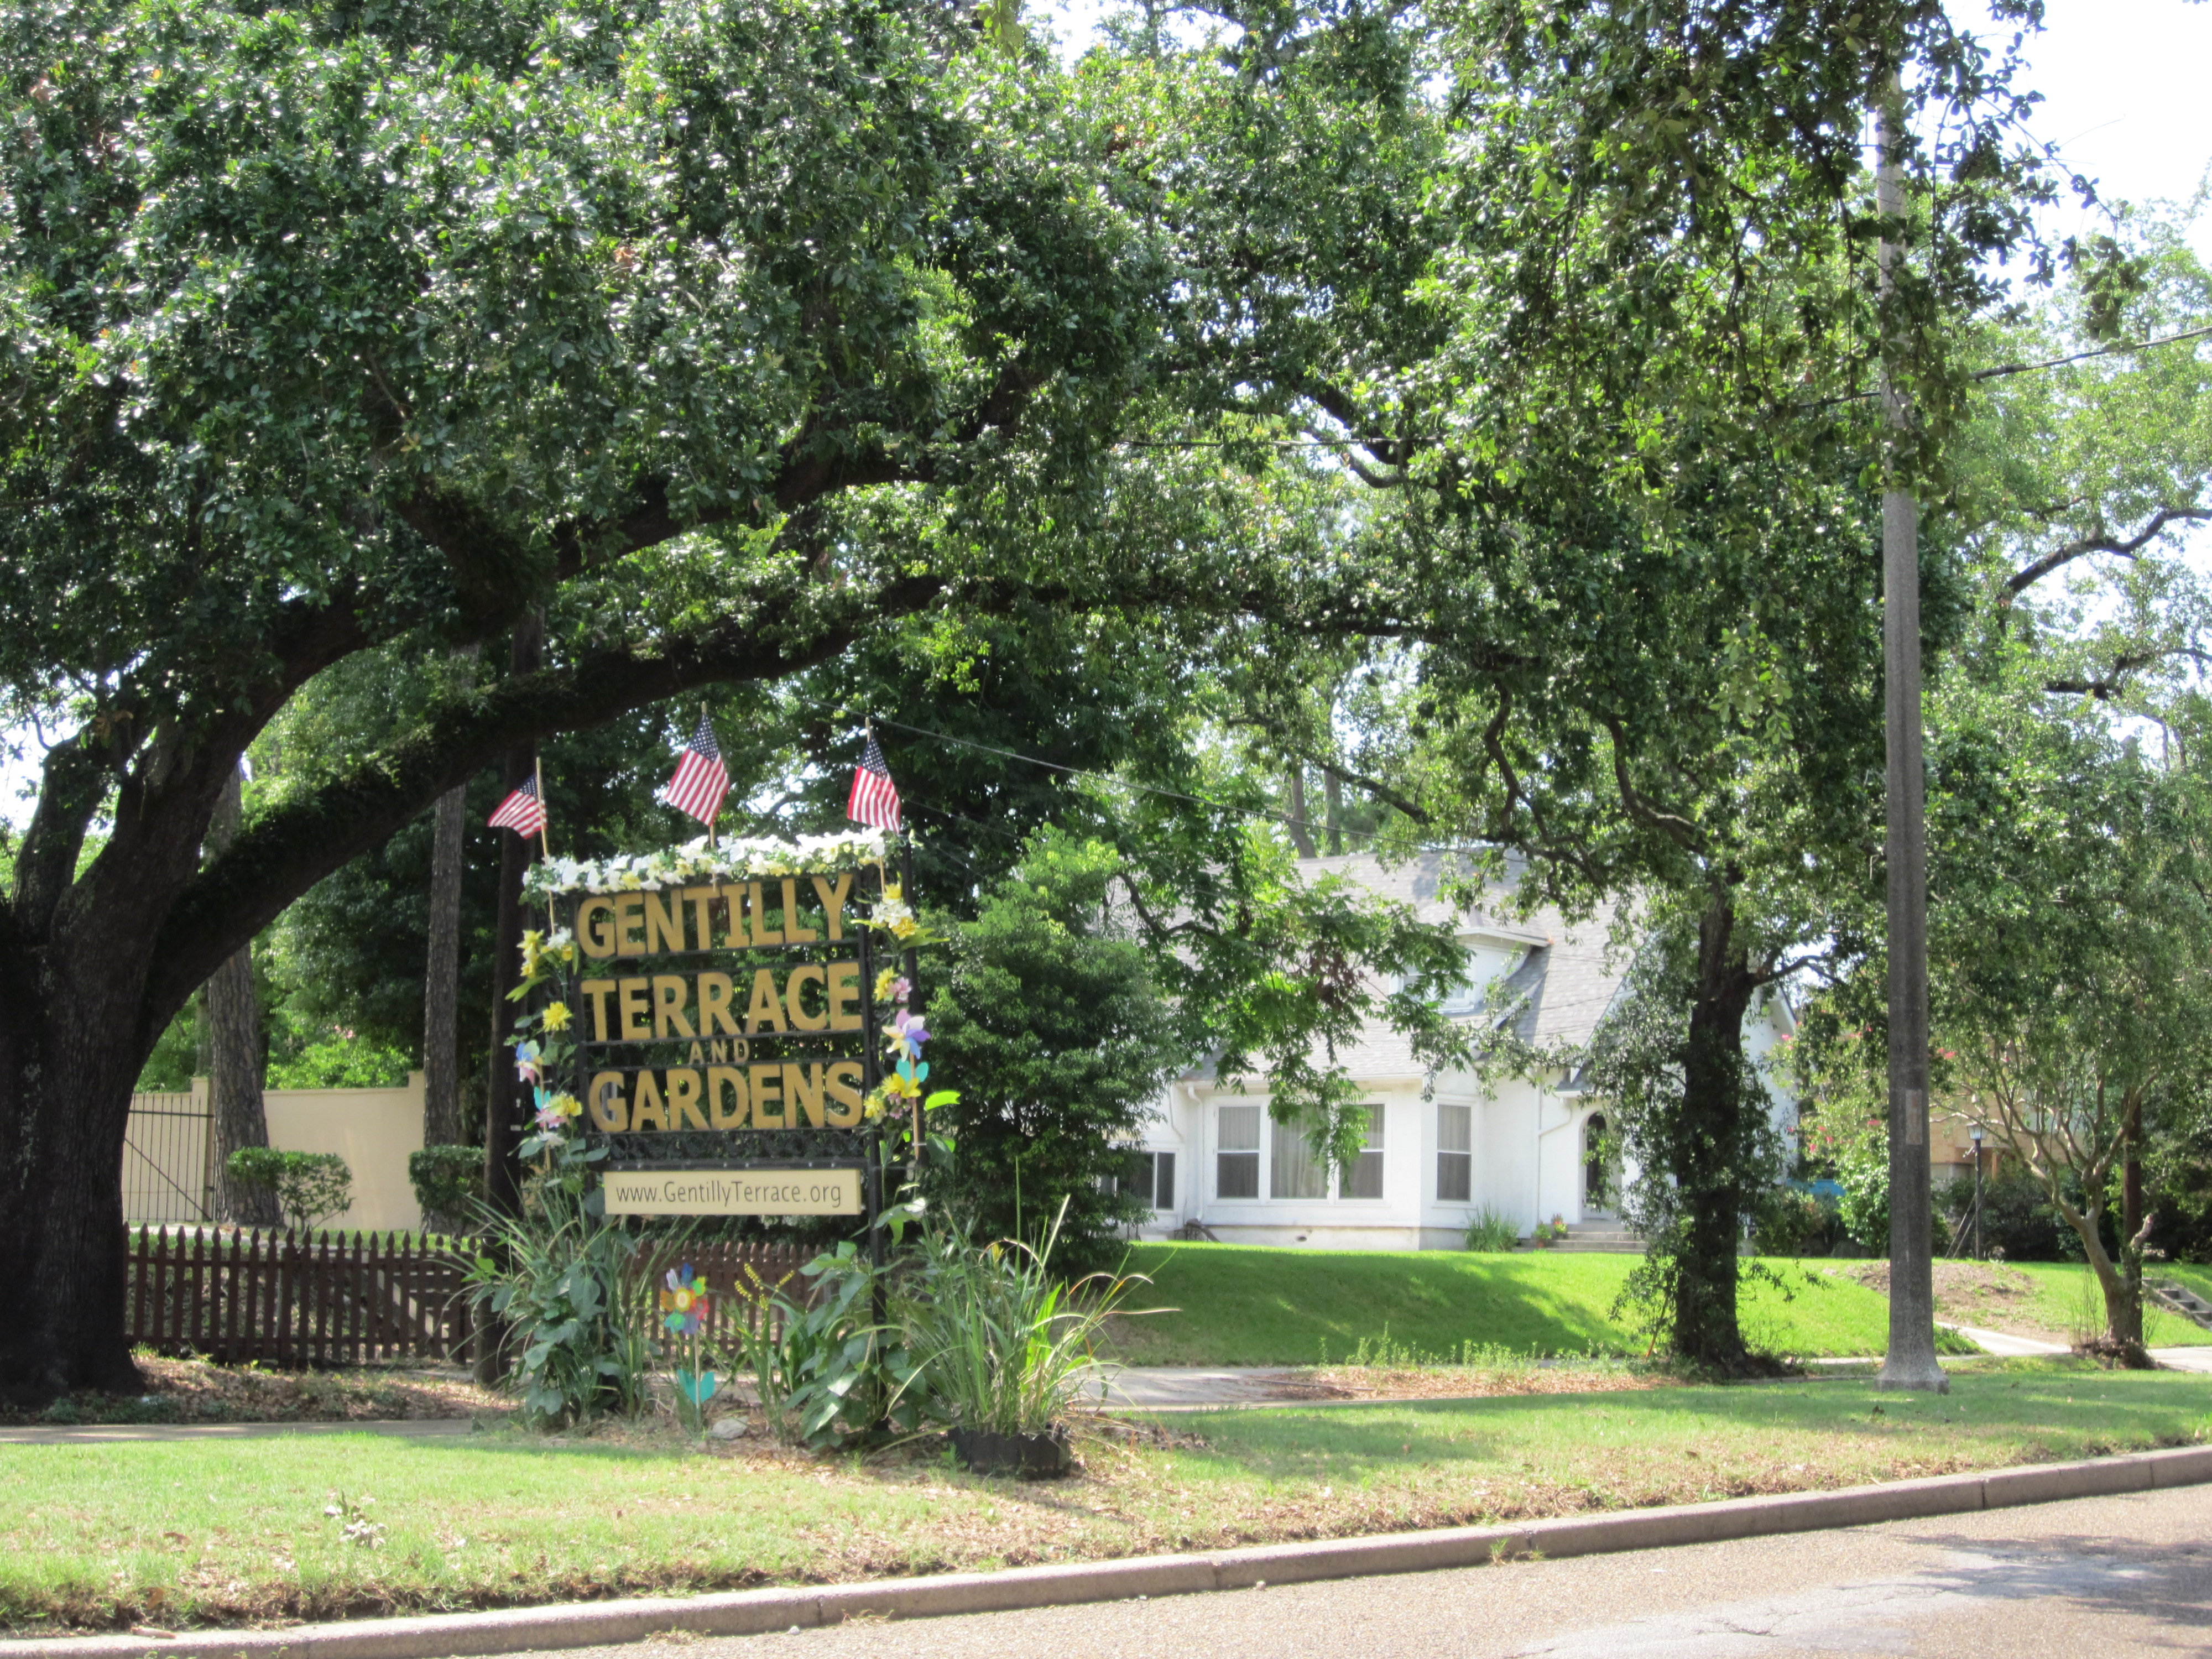 Gentilly Terrace and Gardens New Orleans